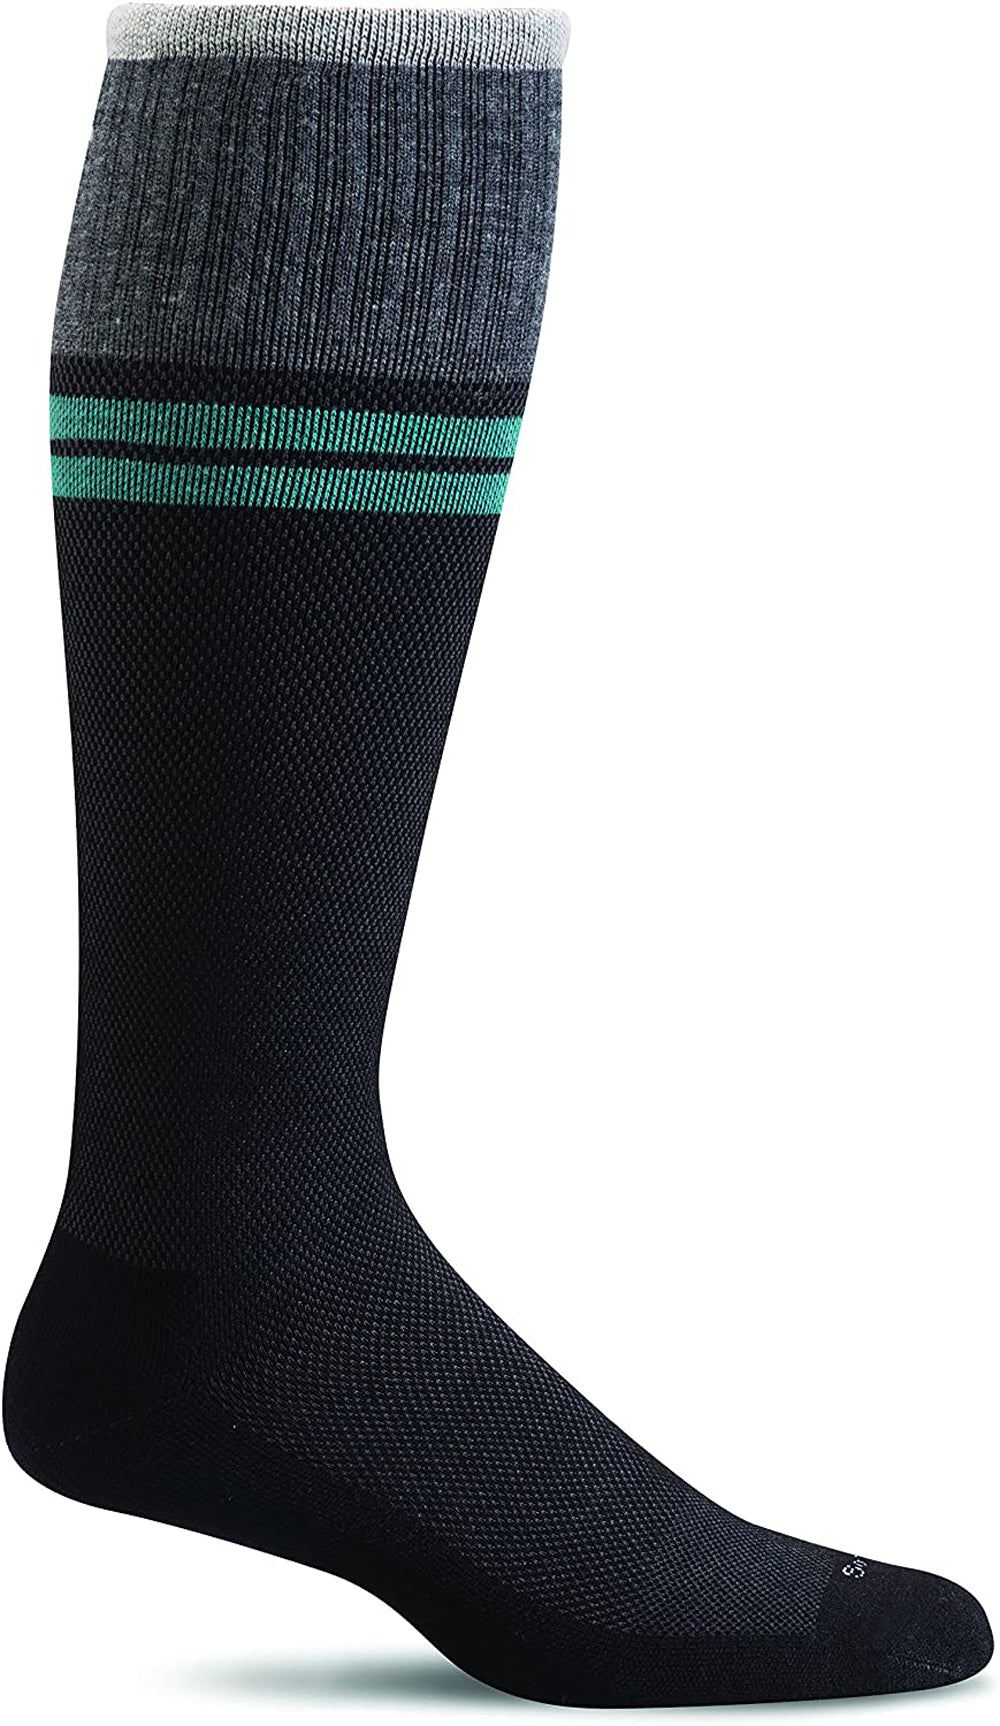 Sockwell Men's Sportster Compression Sock in Black 2 Side Angle View